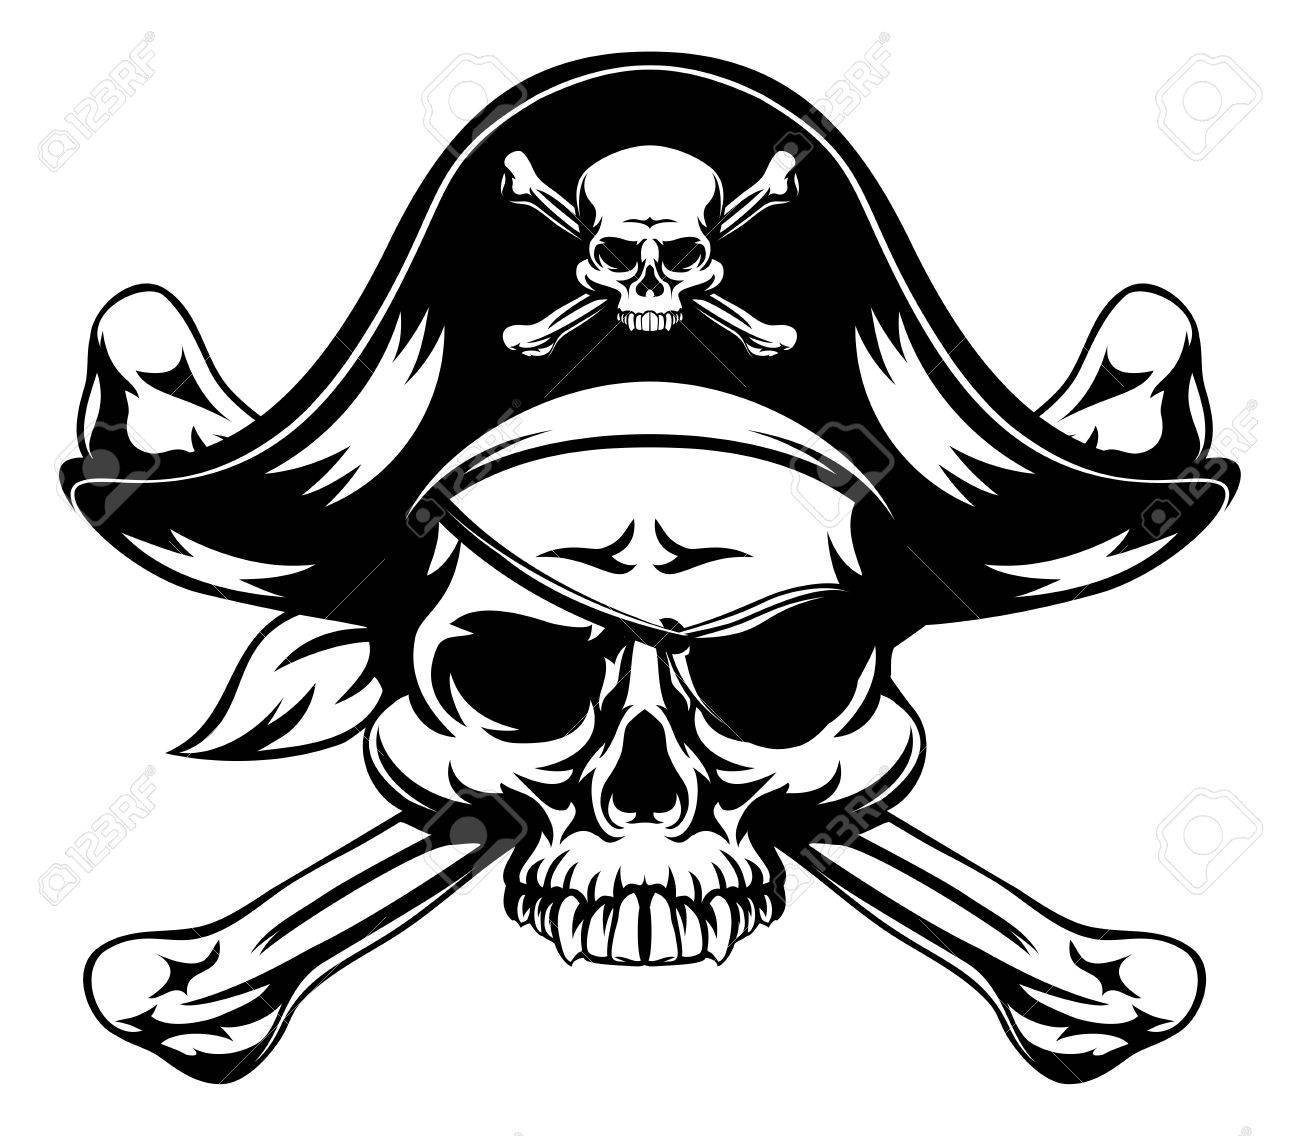 1300x1136 Skull And Crossbones Pirate Jolly Roger Wearing Hat And Eye Patch